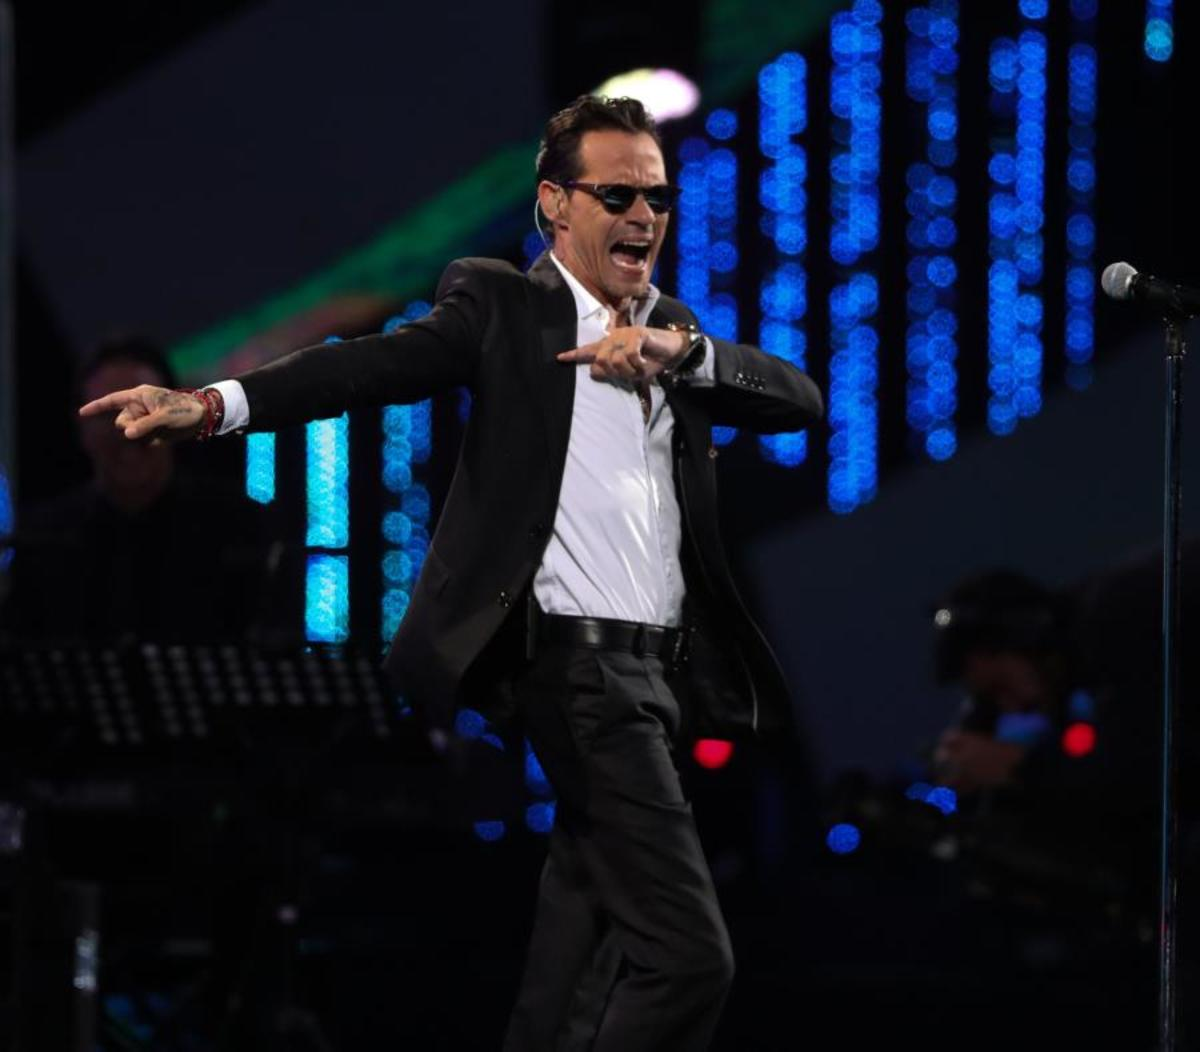 Llega Marc Anthony a YouTube con serie Opus